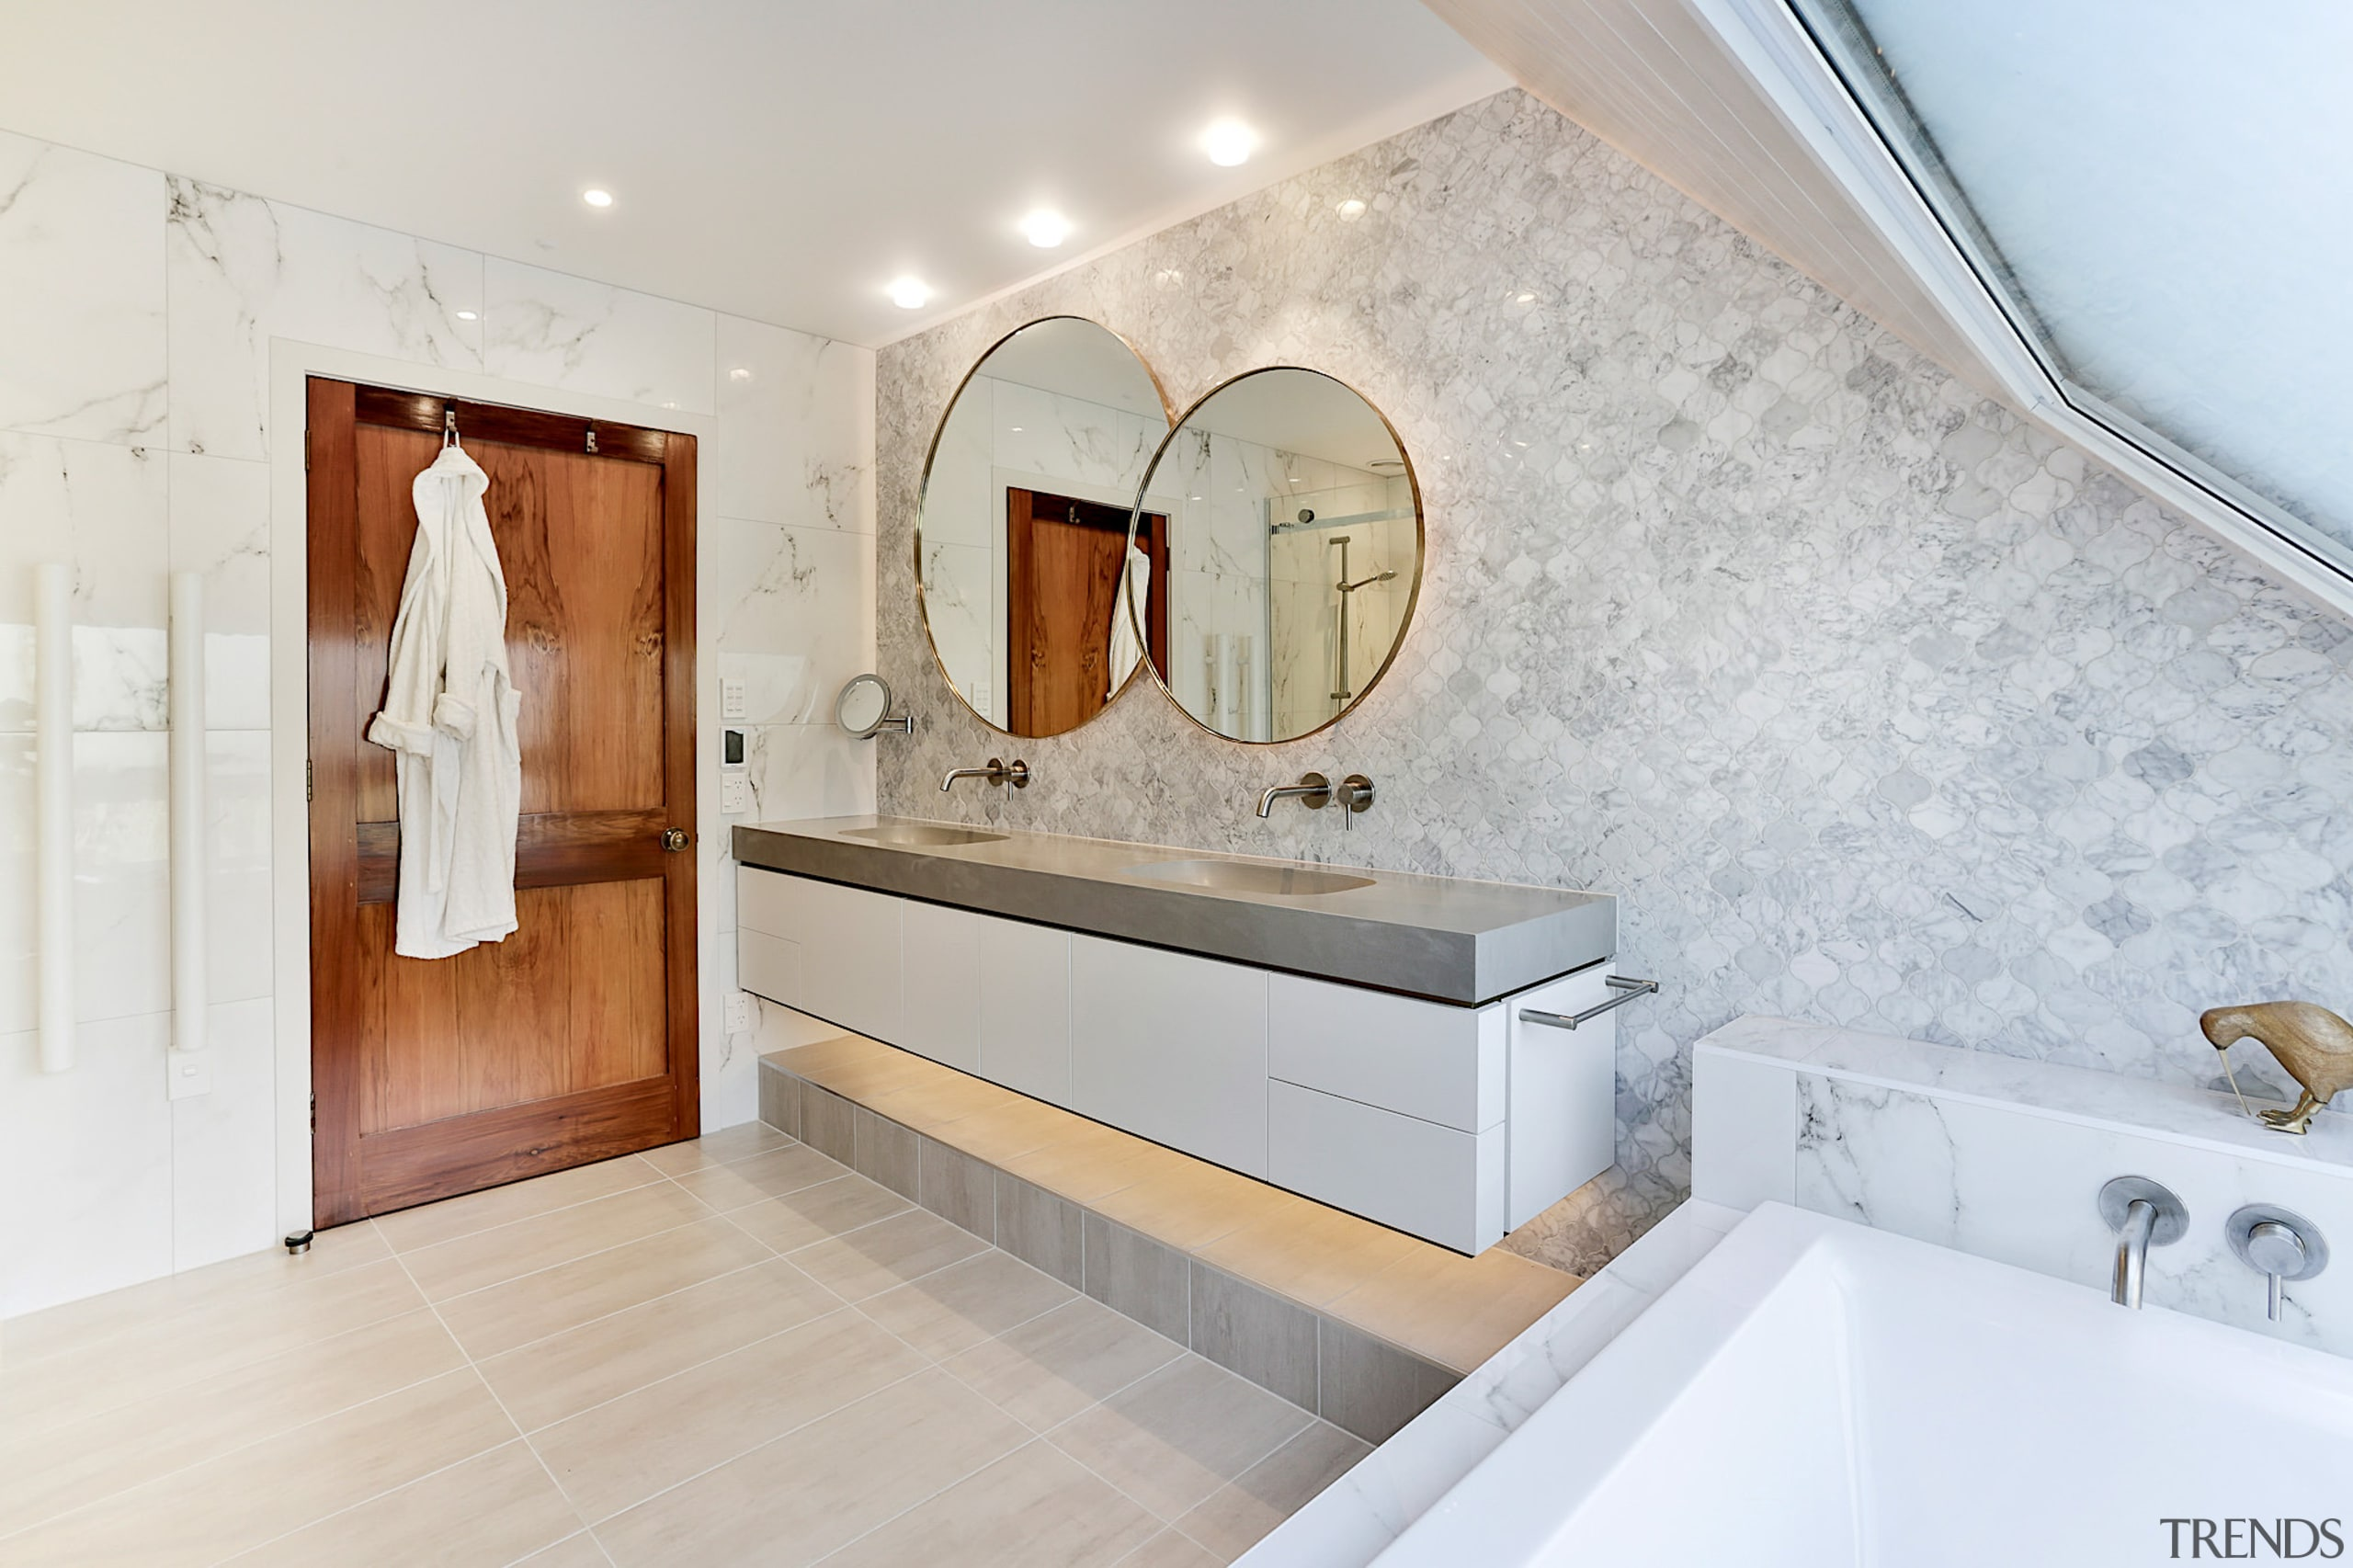 A large wooden door provides a dramatic contrast architecture, bathroom, building, ceiling, estate, floor, flooring, furniture, home, house, interior design, loft, property, real estate, room, sink, tap, tile, wall, gray, white